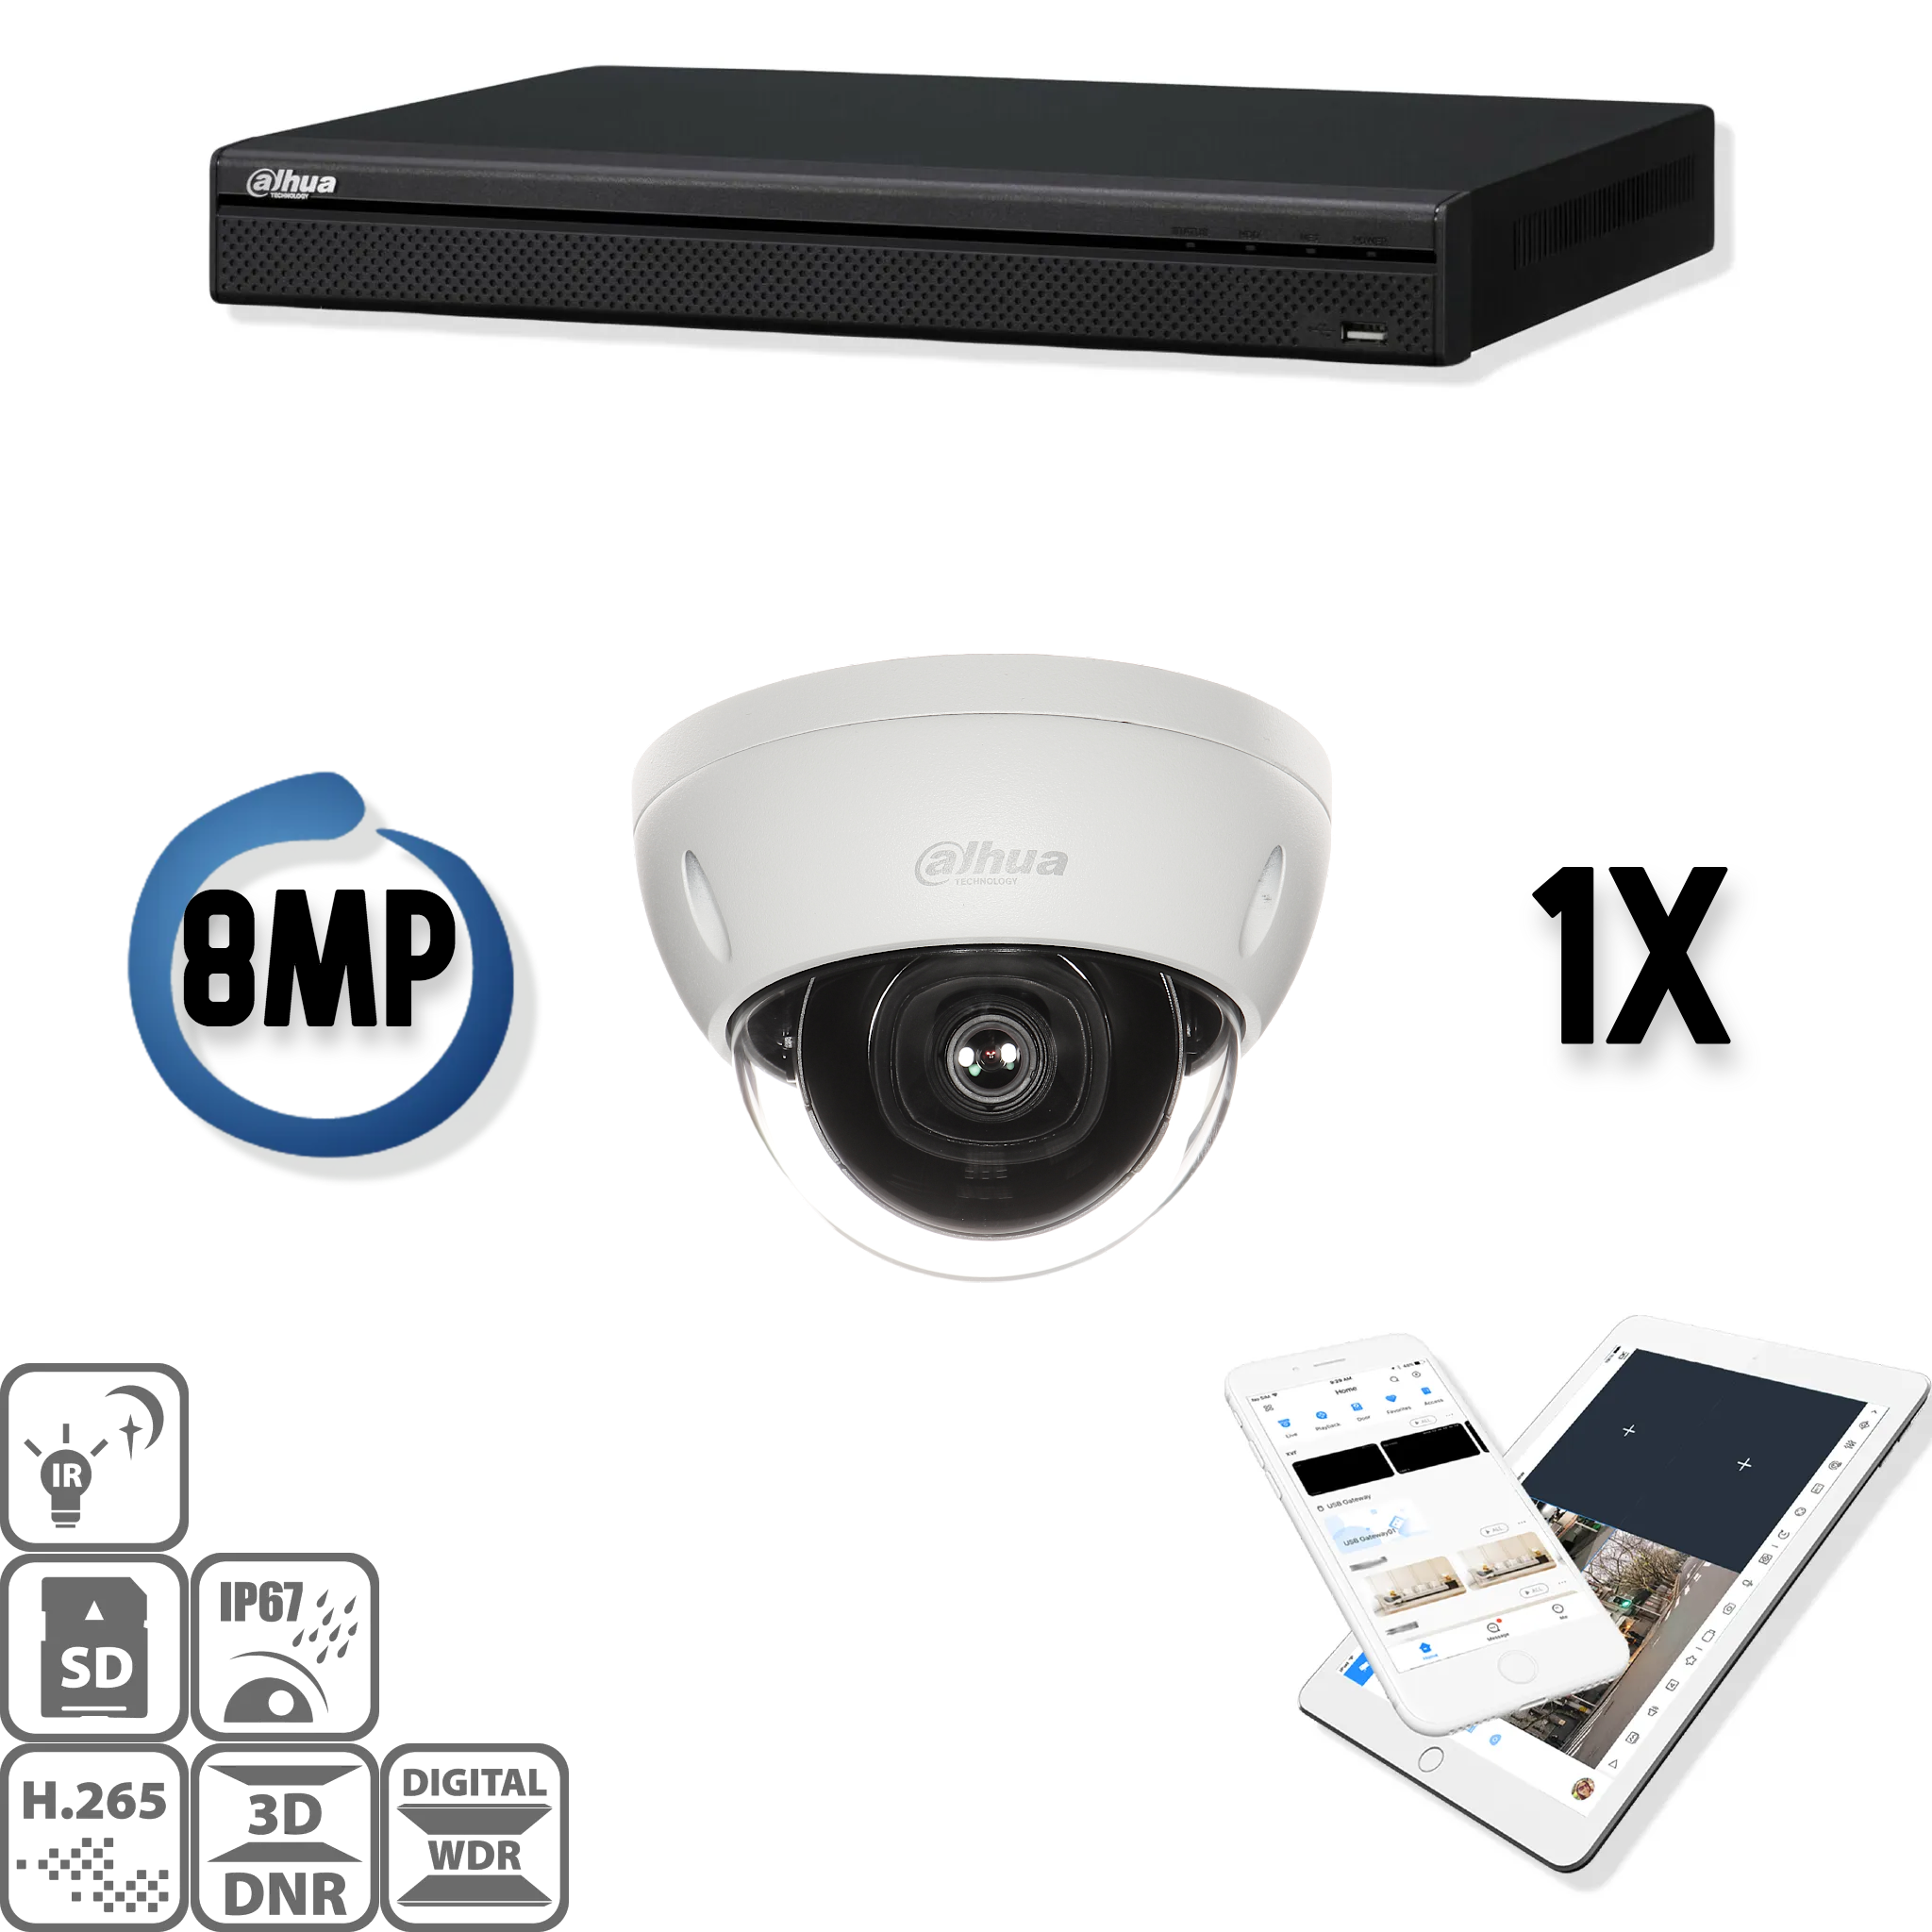 The Dahua IP kit 1x dome 8mp Ultra HD camera security set contains 1 IP dome camera, which are suitable for indoor or outdoor use. The camera has an Ultra HD image quality with IR LEDs for a perfect view in darkness. This HD IP camera set delivers razor-s